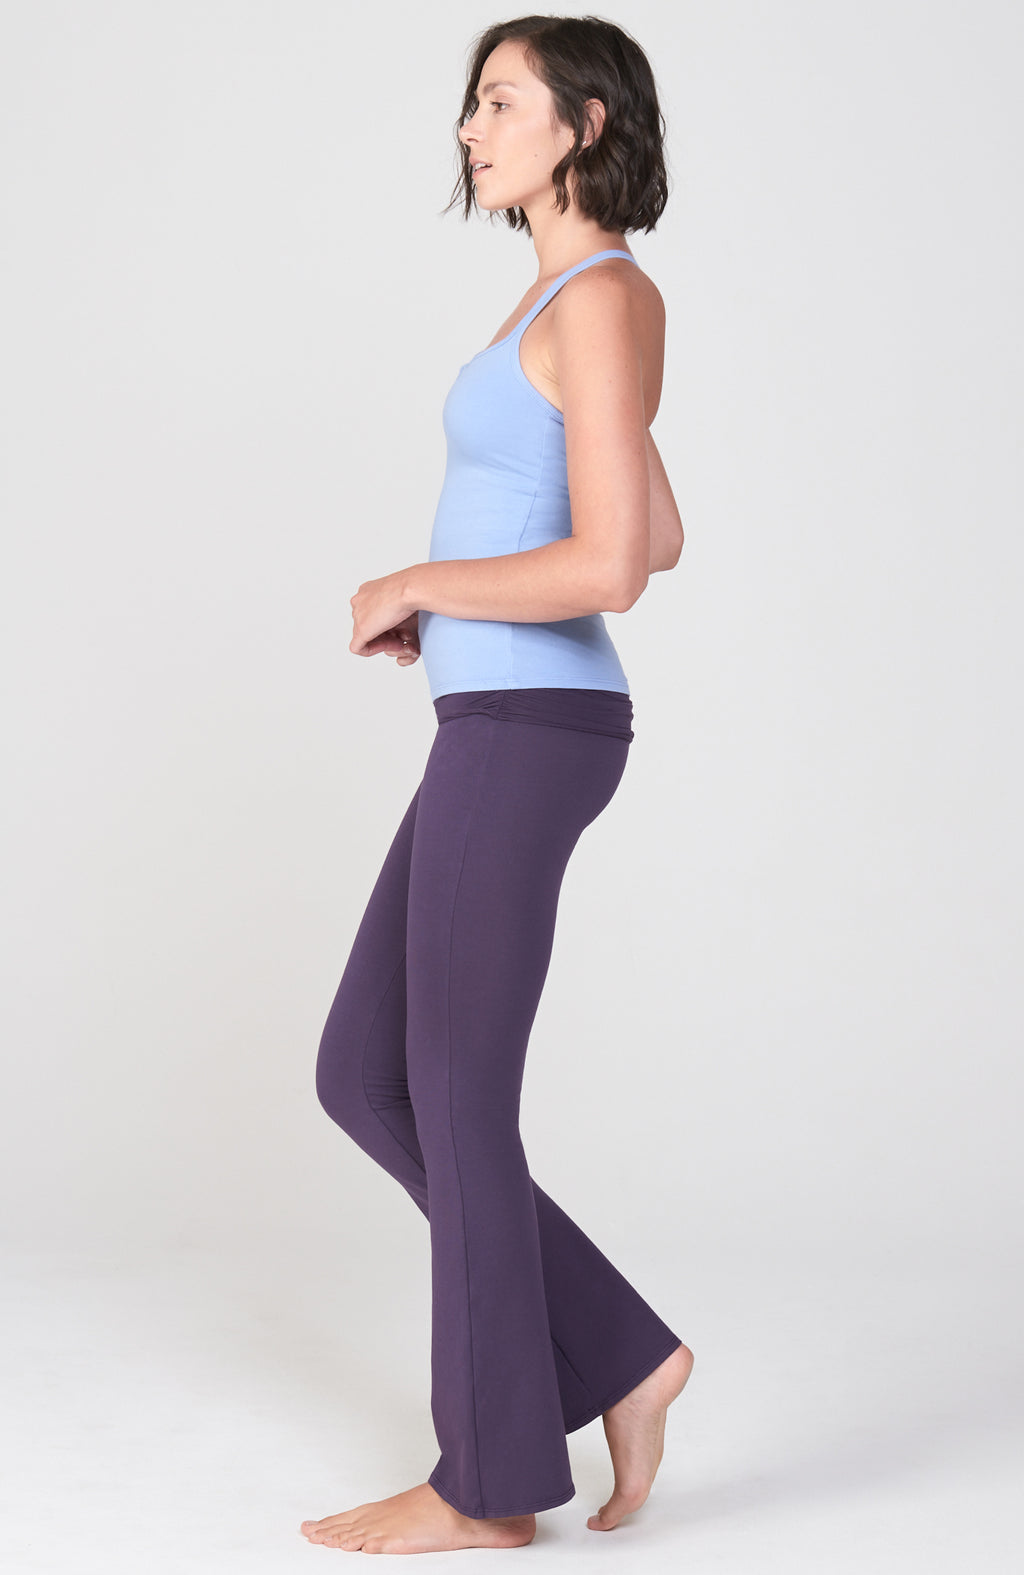 Ruched Waist Practice Pant in Deep Purple